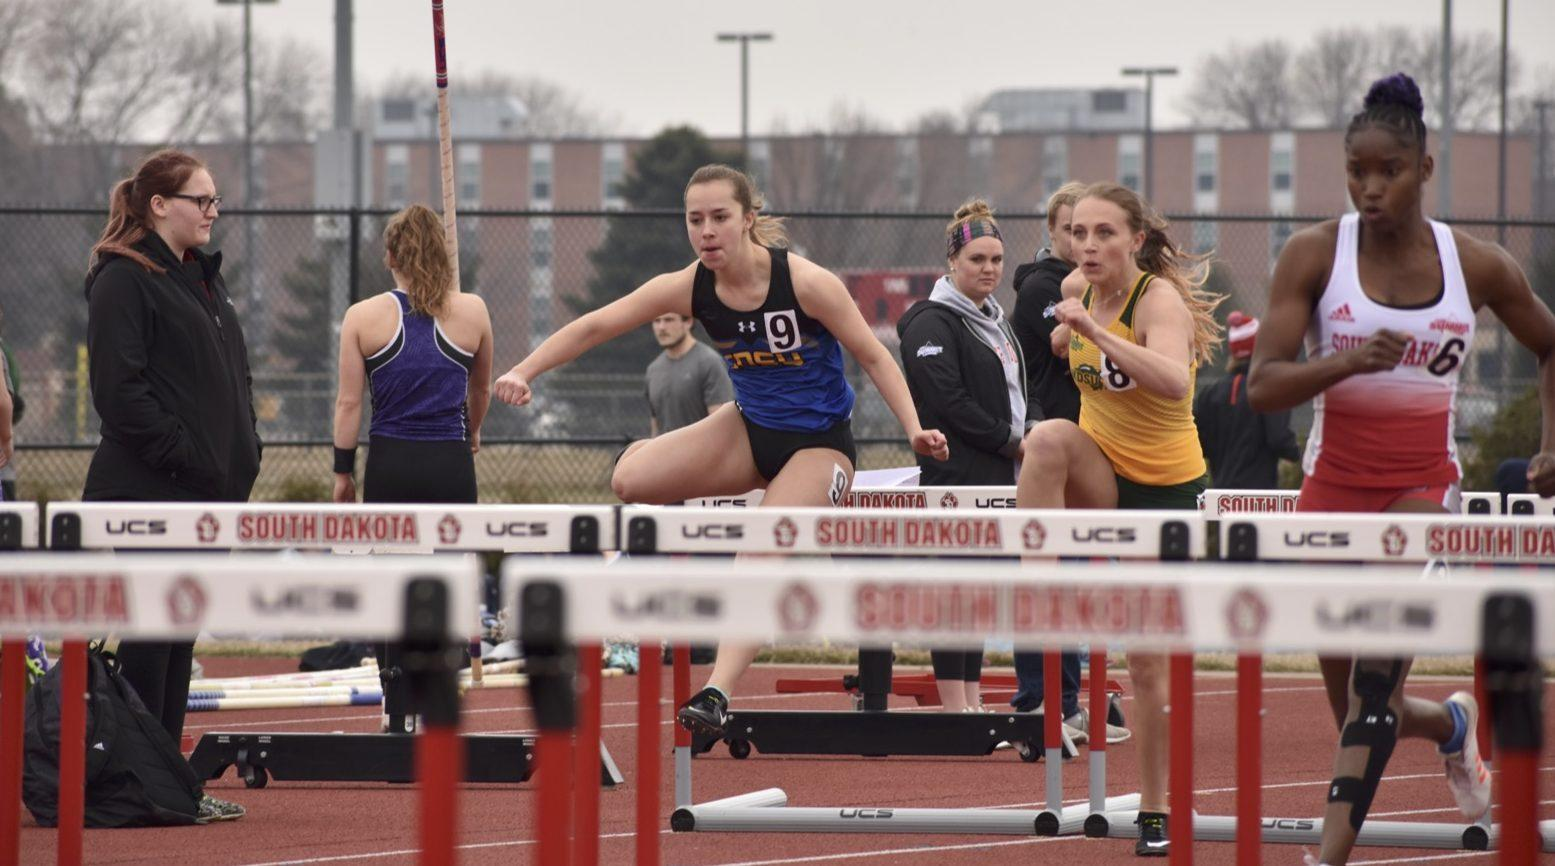 ABBY FULLENKAMP Sophomore Haley Mottinger competes in the women's 100 meter hurdles during the SD Invitational meet April 11 at USD. Mottinger placed 10th with a time of 15.54.